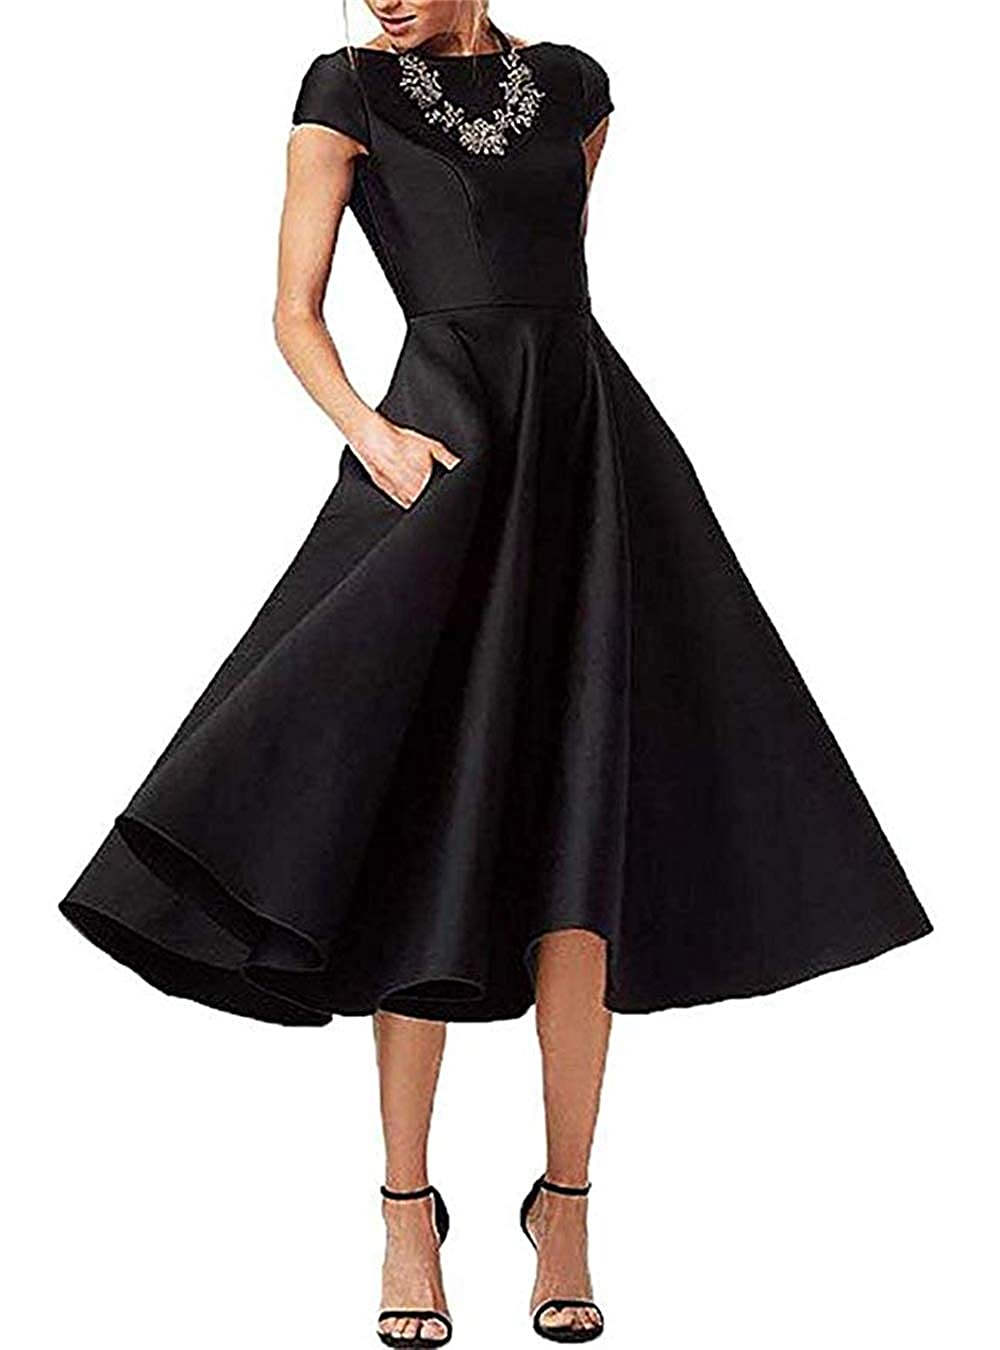 Black tutu.vivi Women's Satin Tea Length Mother of The Bride Dresses Short Sleeves Prom Dress with Pockets